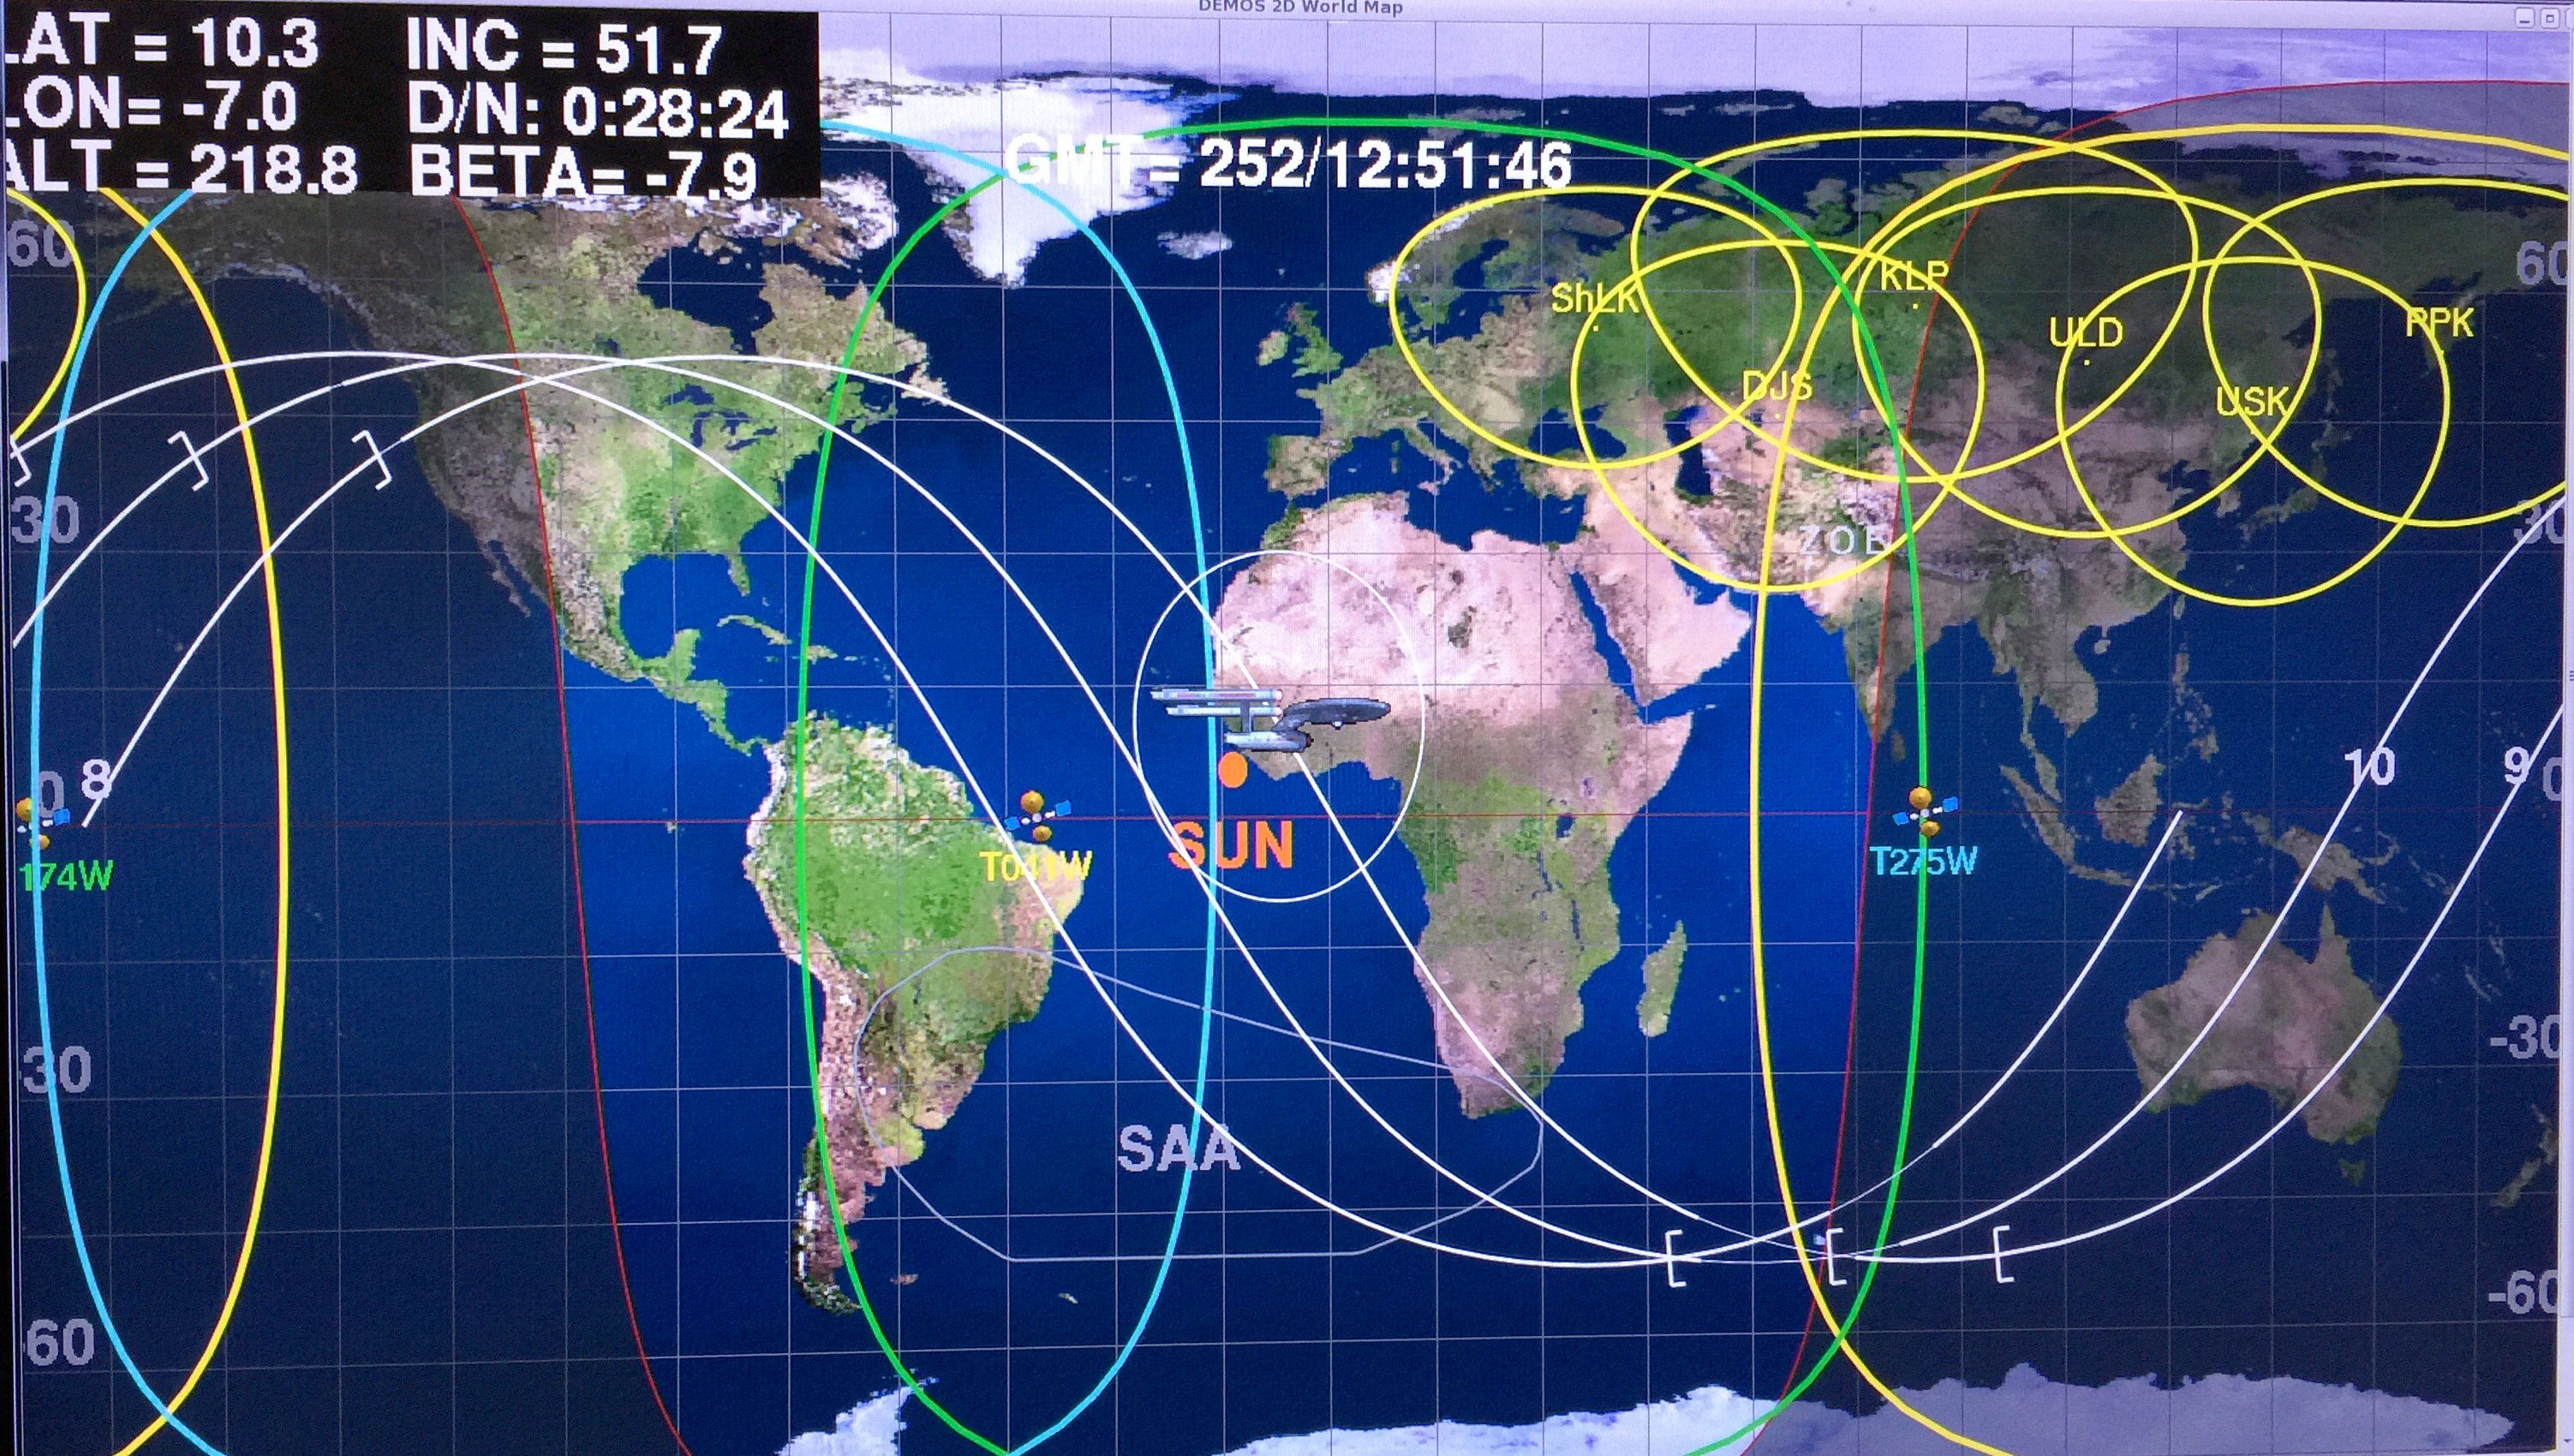 Star trek at 50 nasa and space exploration collectspace messages in honor of startrek50 an enterprise icon is used to show where station is on the world map in mission control gumiabroncs Choice Image